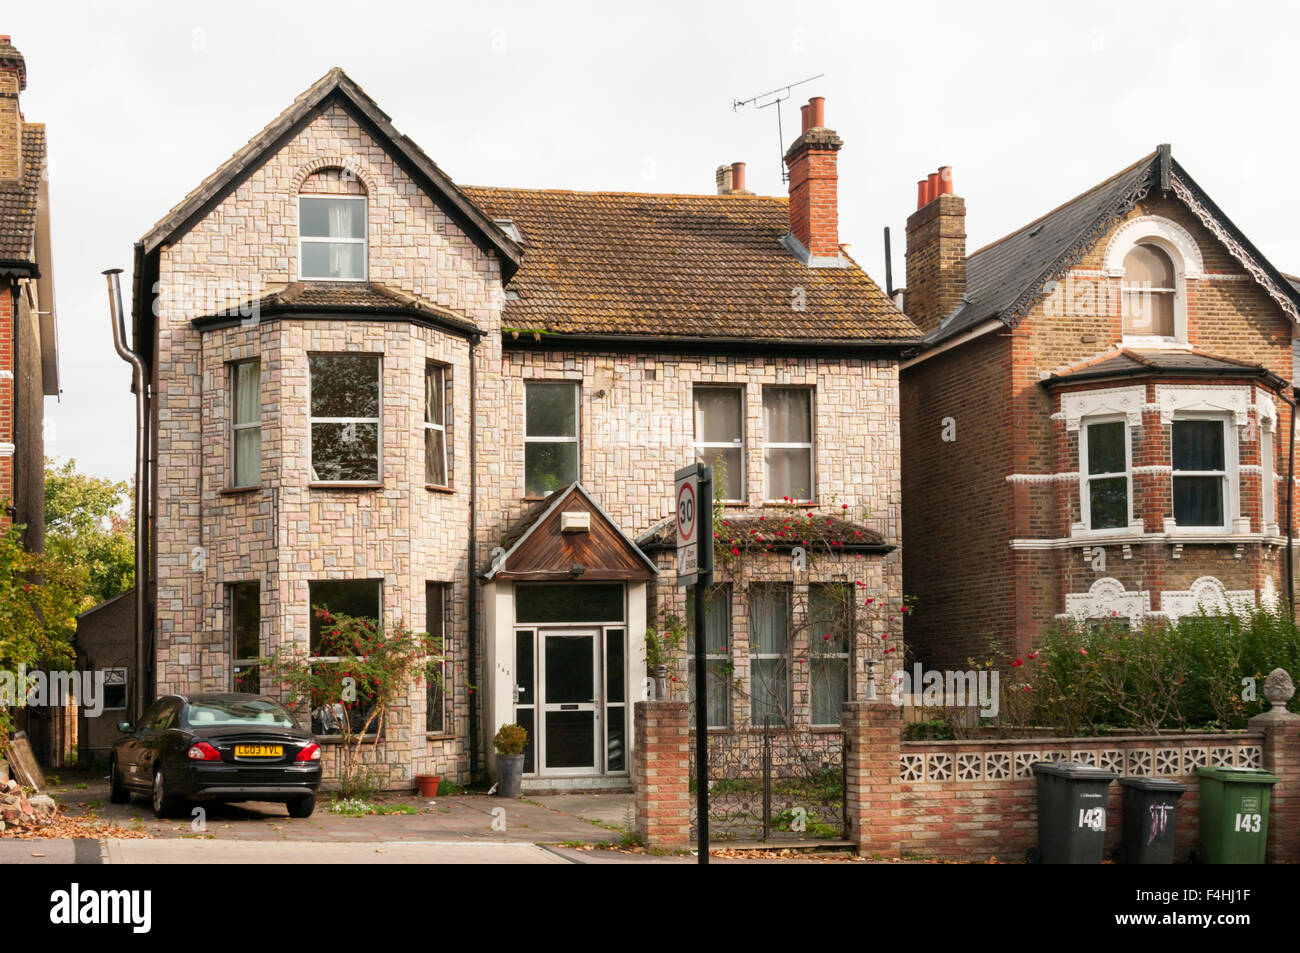 Fake stone cladding on a large South London Victorian house. - Stock Image